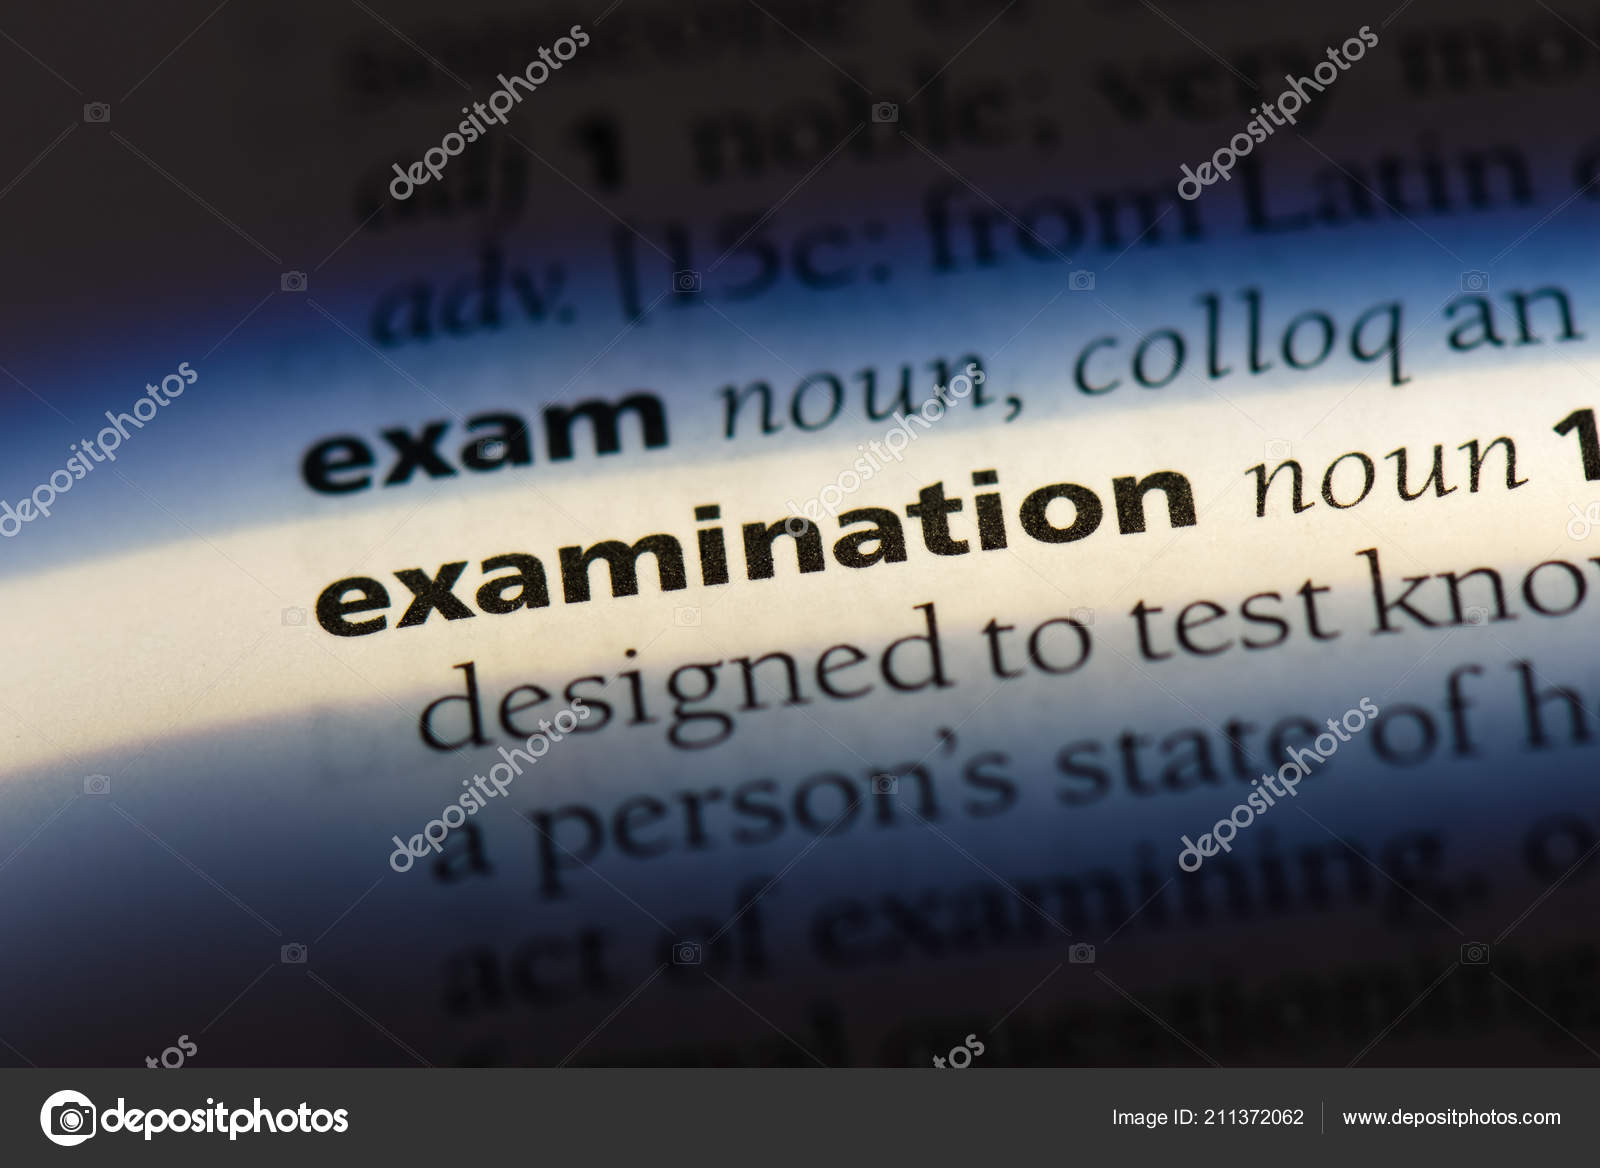 concept of examination malpractice essay The offences are: cheating at examinations, stealing of question papers, impersonation, disturbances at examination, obstruction of supervision, forgery of result slip, breach of duty, conspiracy and aiding, etc )since earlier approaches have not curbed examination malpractices, we are of the view that a more pragmatic approach to the problem.